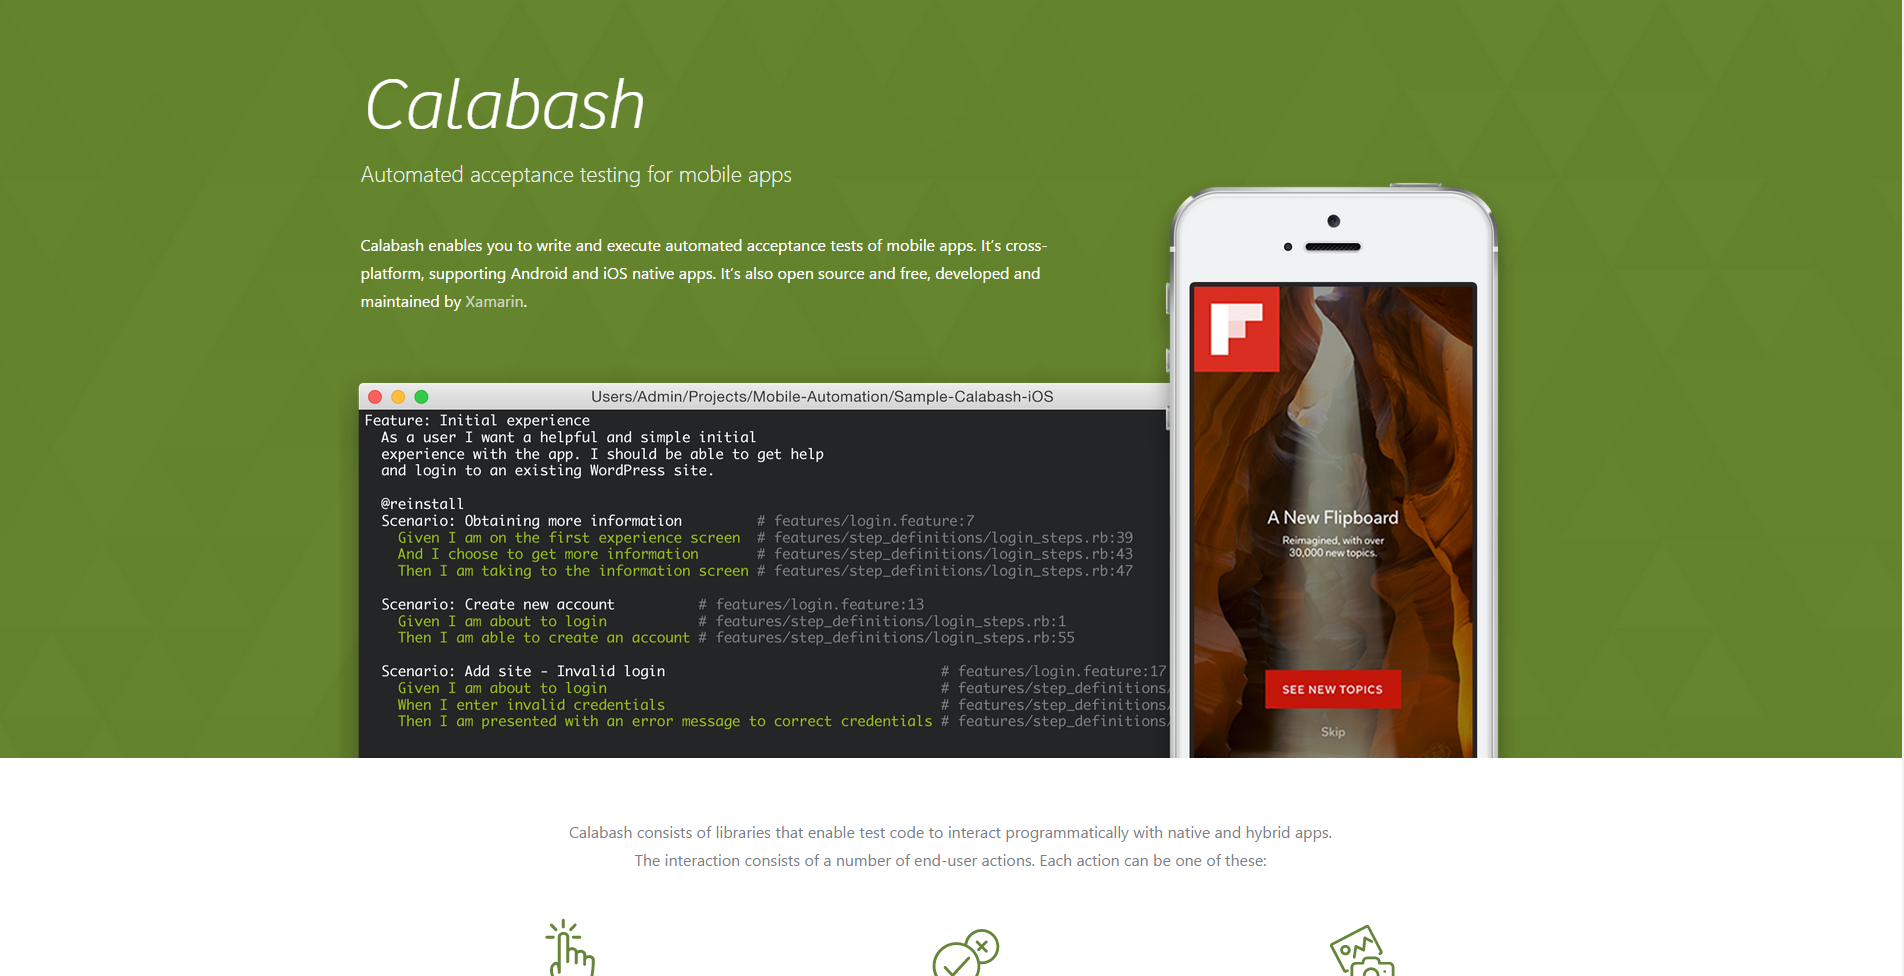 Calabash - automated acceptance testing for mobile